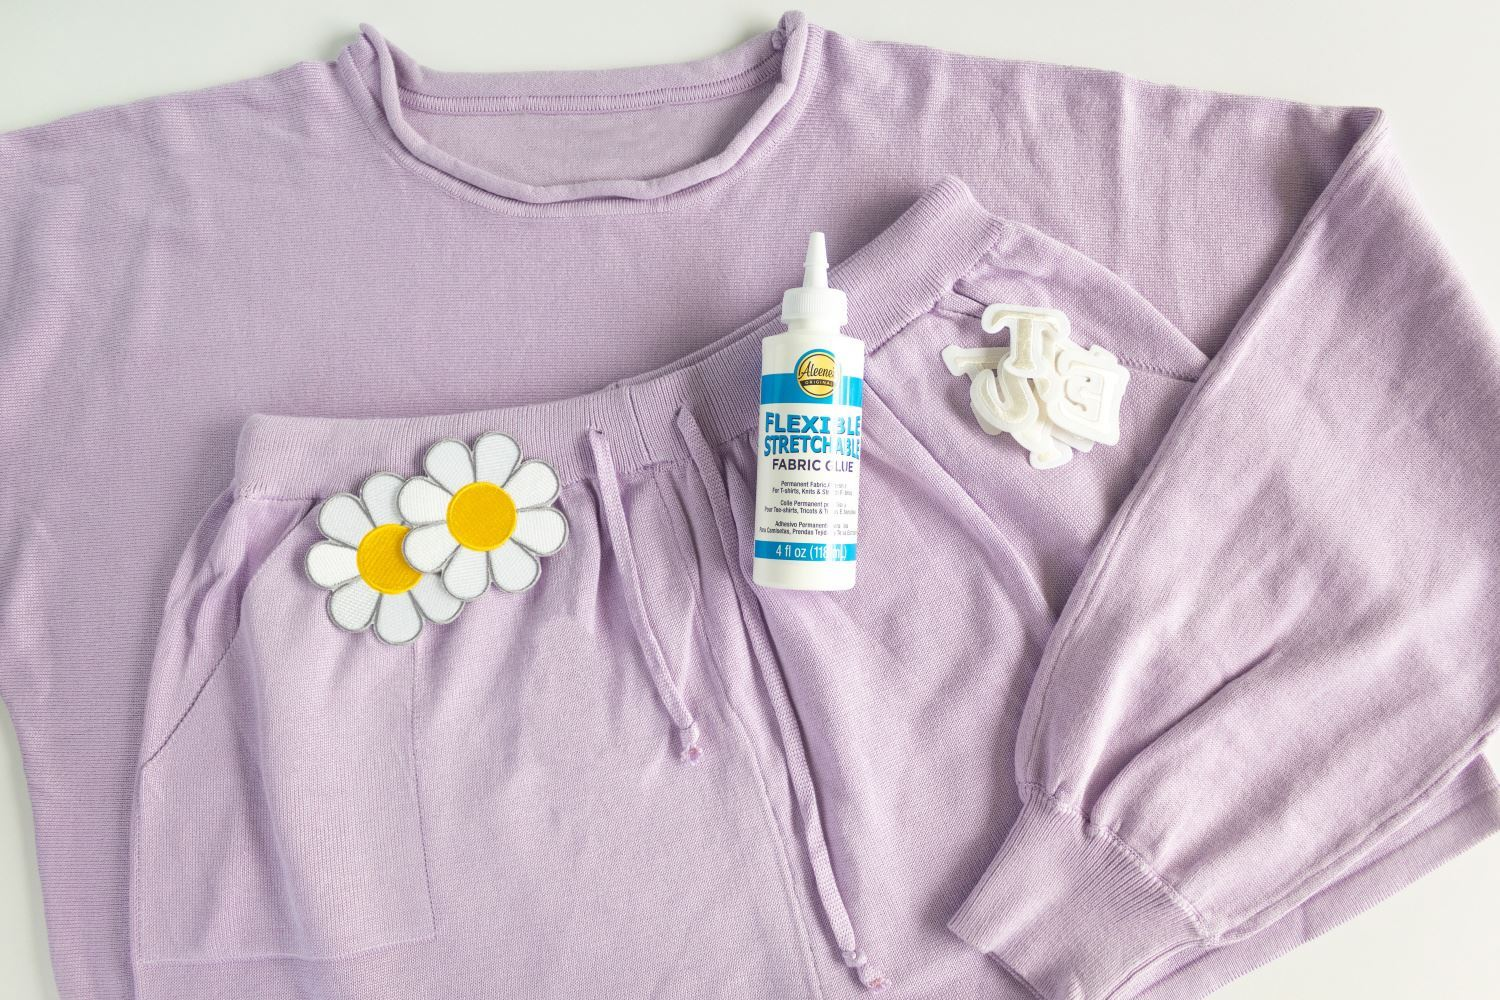 How to glue patches on loungewear